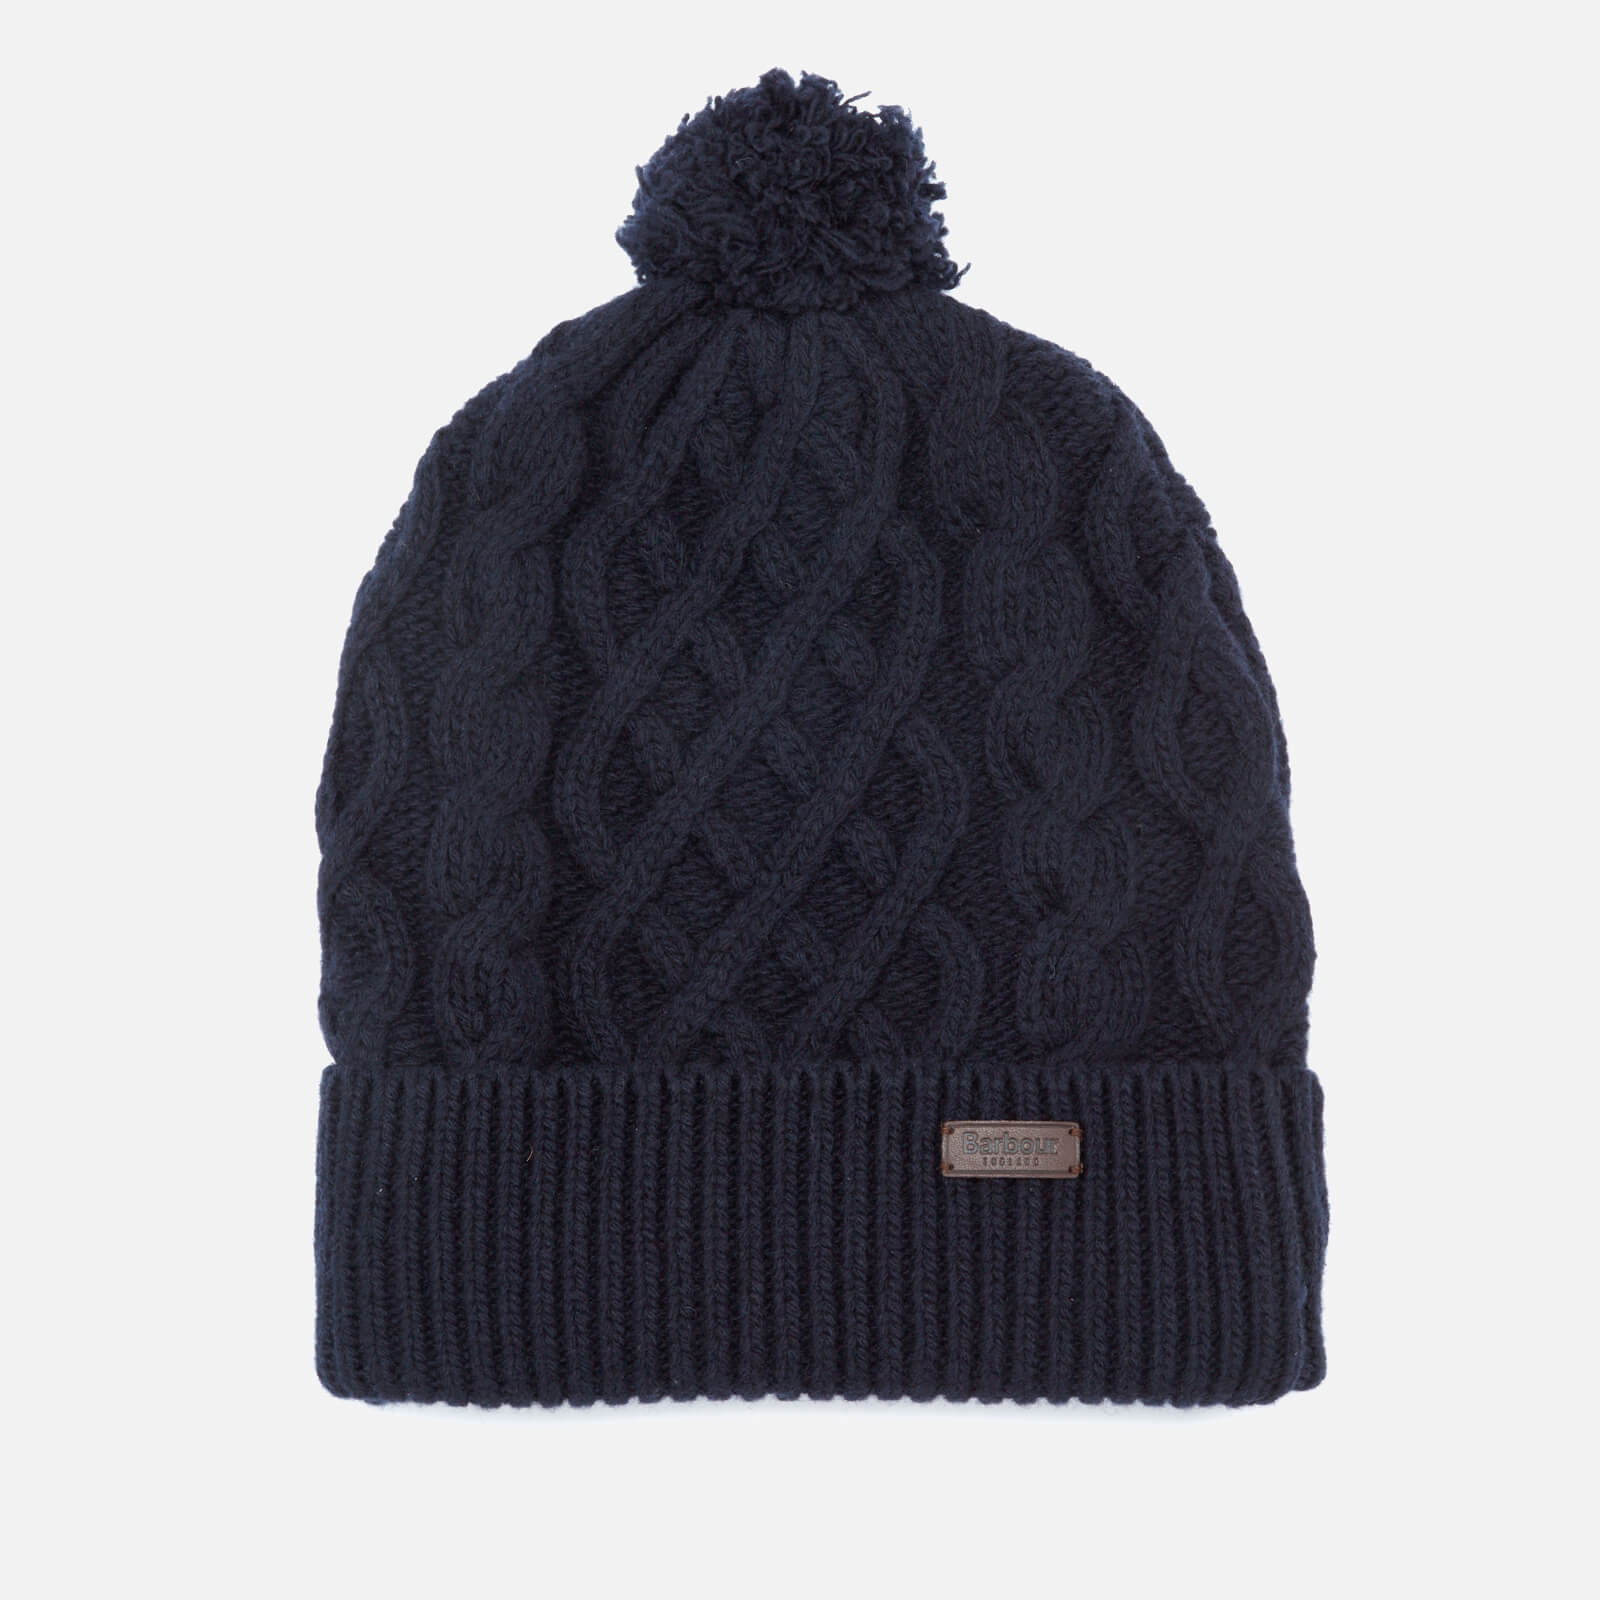 5a3cdfa93e5 Barbour Cable Knit Beanie Hat - Navy - Free UK Delivery over £50